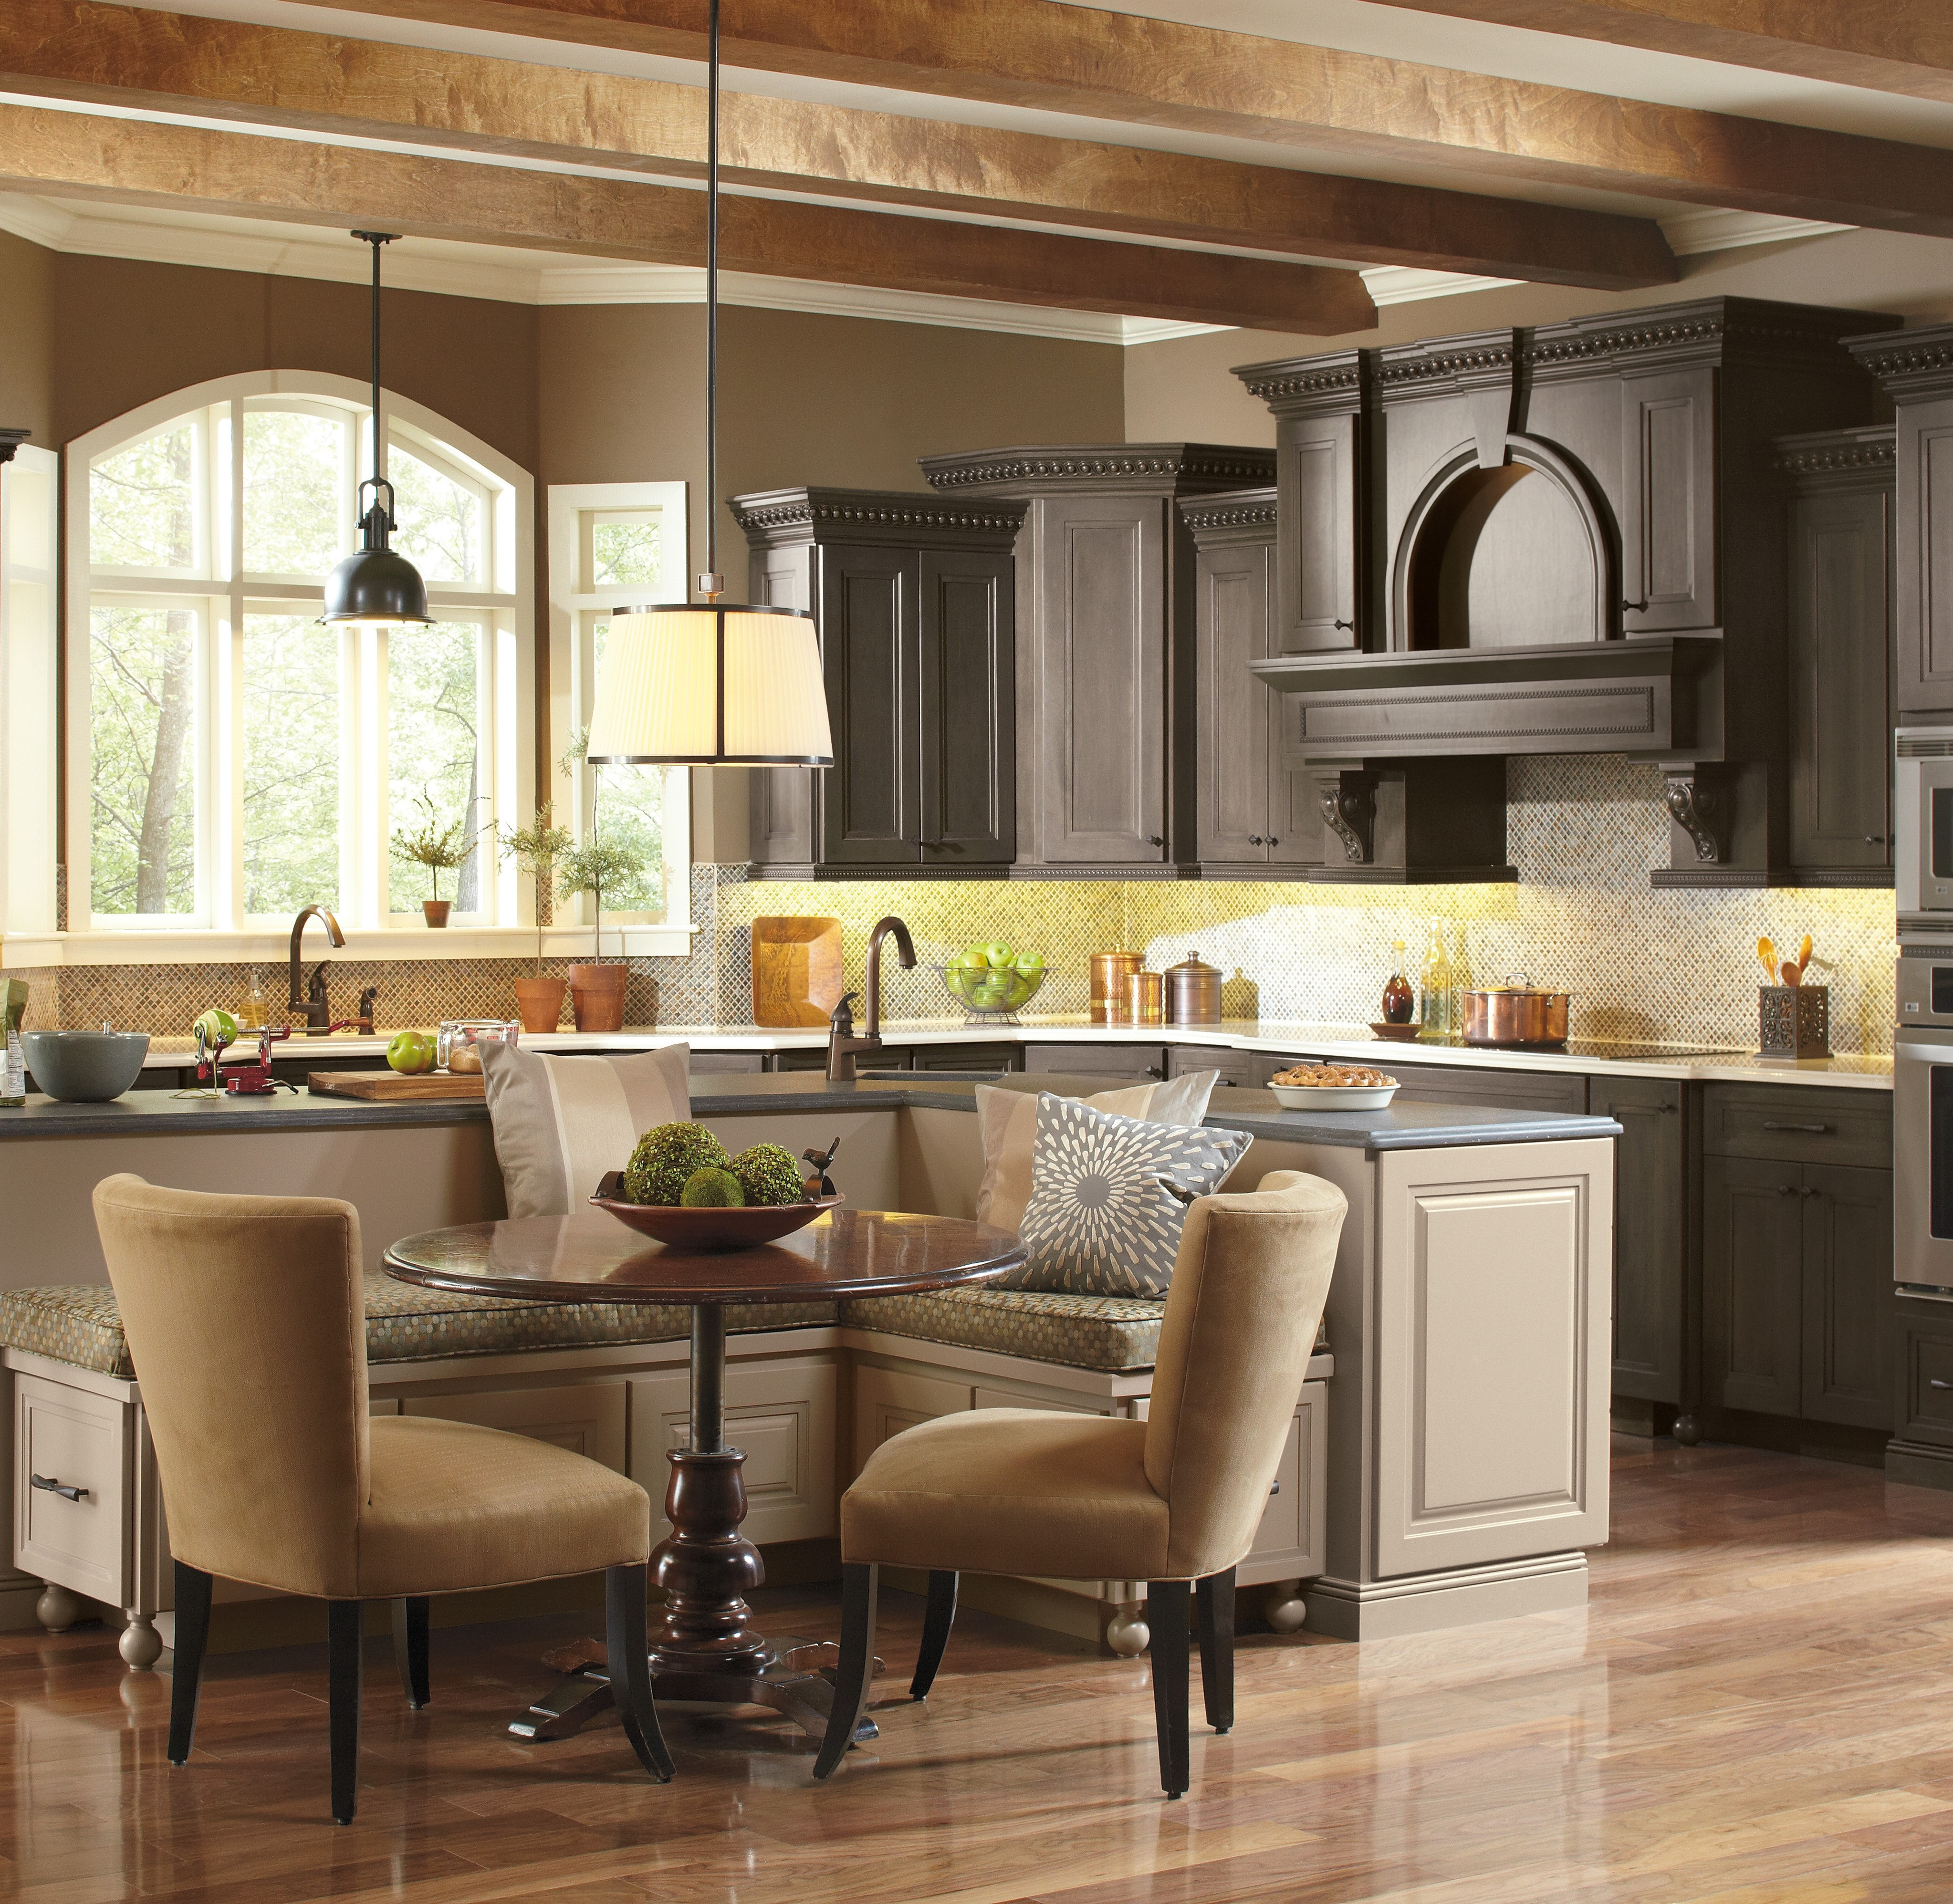 5 Tips For Preparing To Renovate Your Kitchen